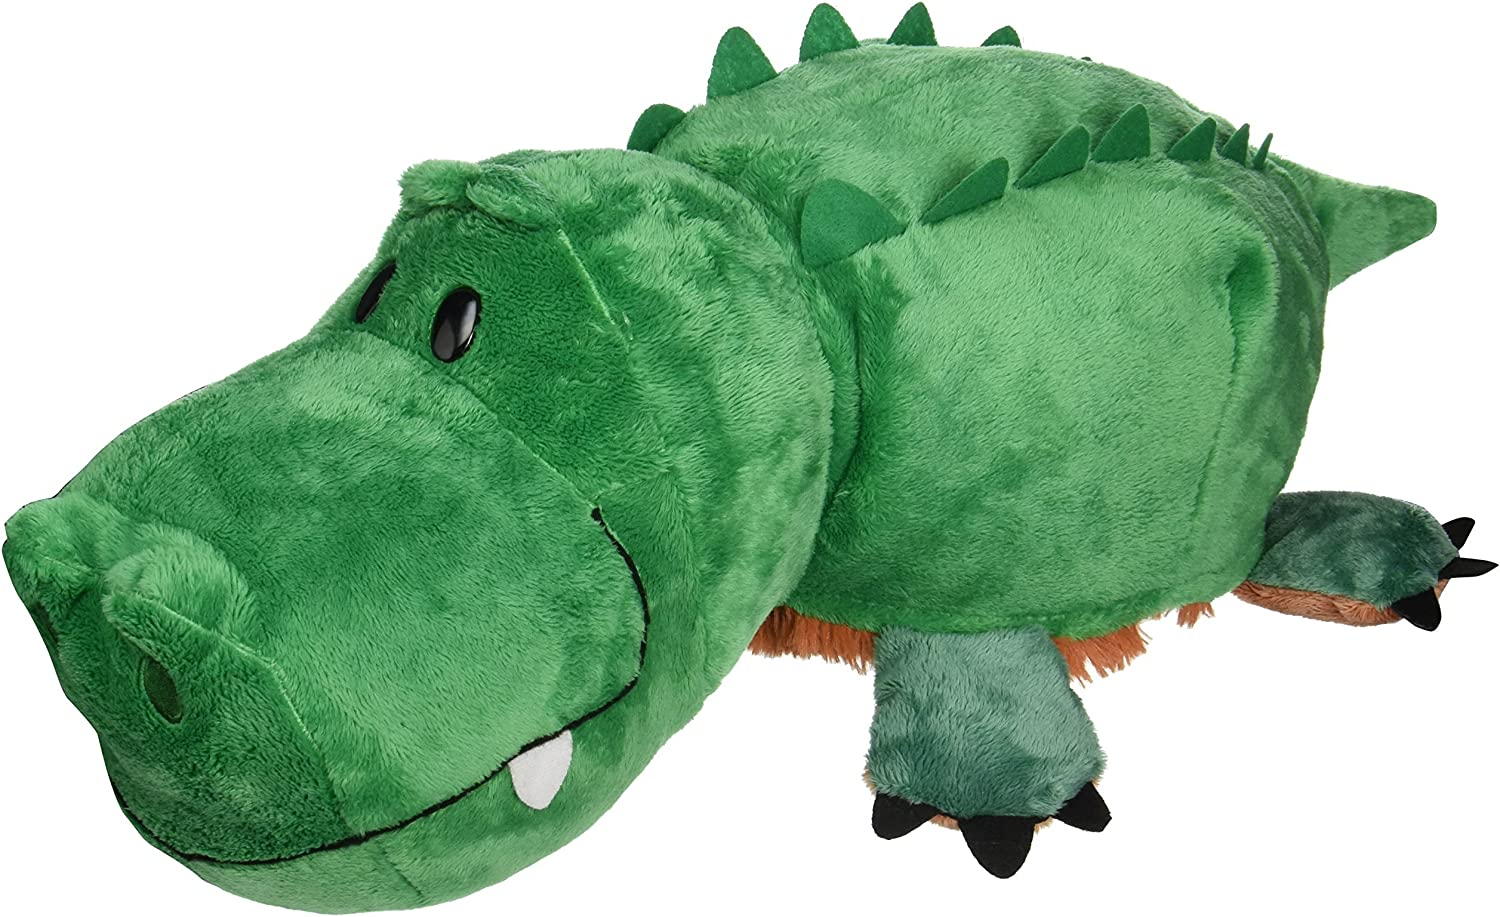 FlipaZoo The 16 Plush with 2 Sides of Fun for Everyone - Each Huggable FlipaZoo Character is Two Wonderful Collectibles in One (Grizzly Bear / Alligator)